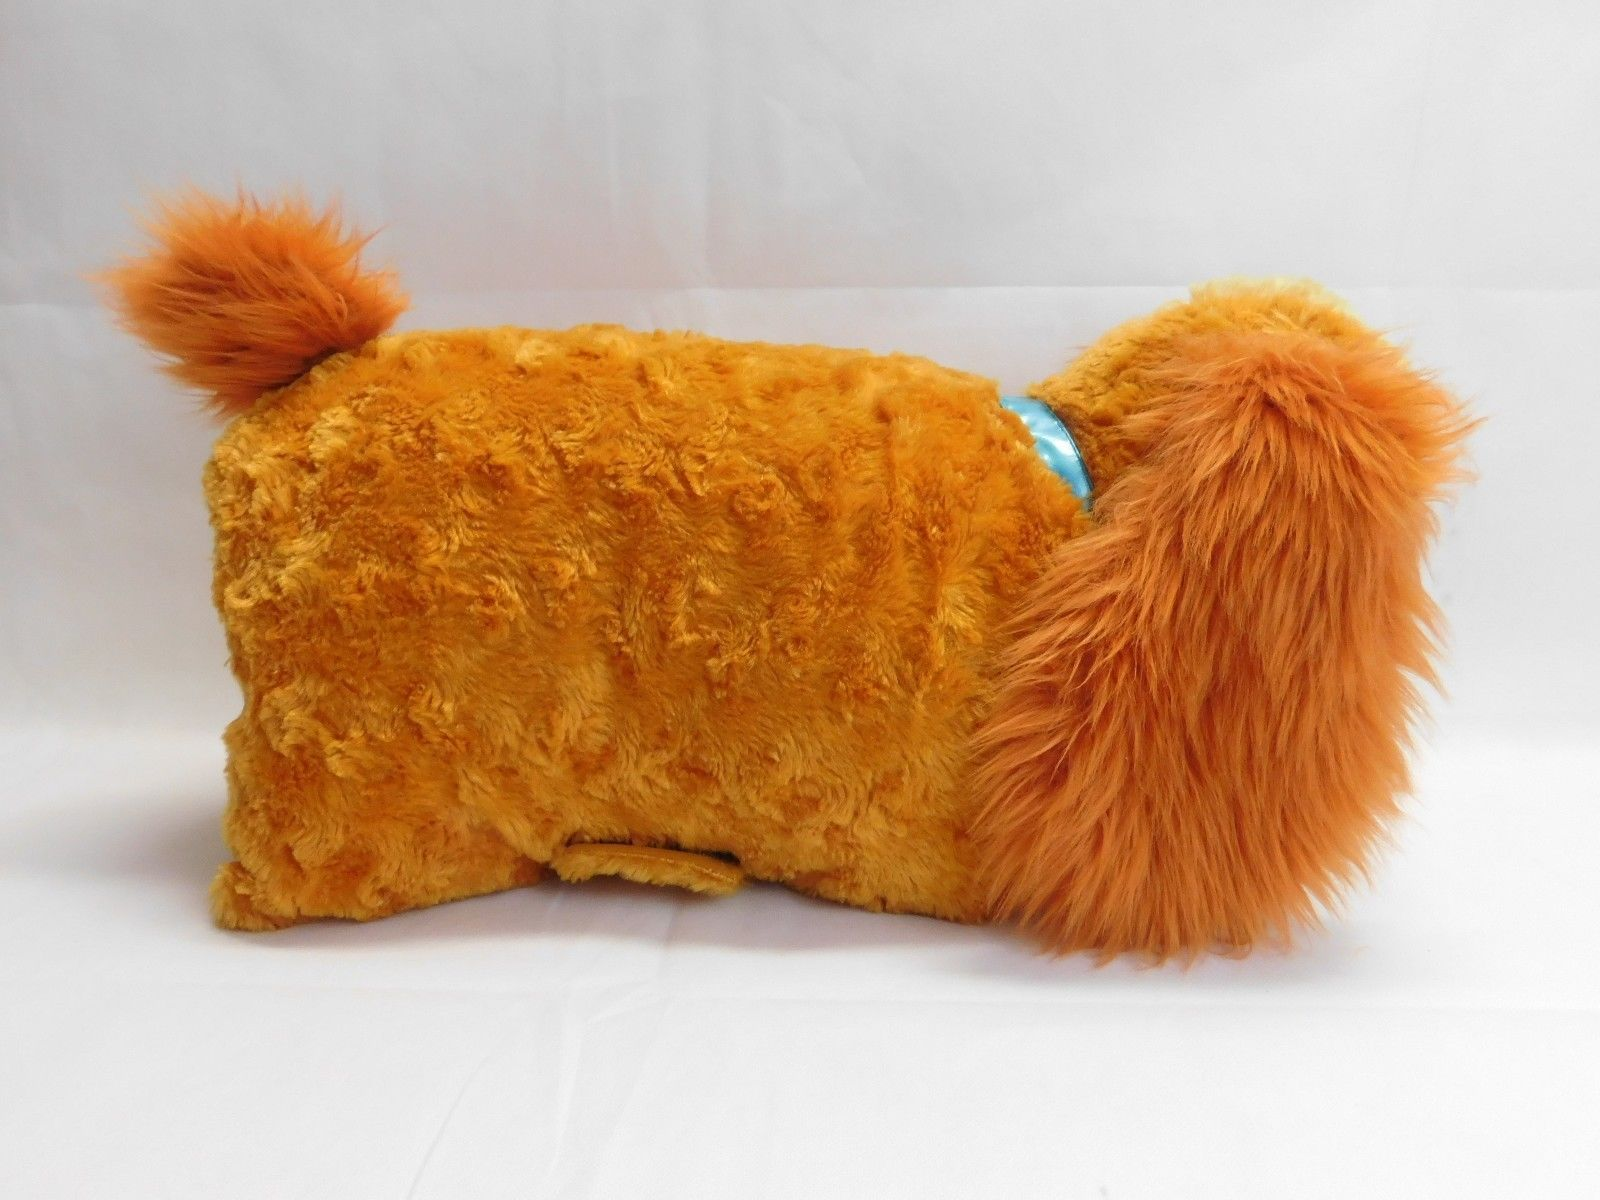 Stuffed Animal Dog Pillow : Disney Parks Lady & the Tramp 20